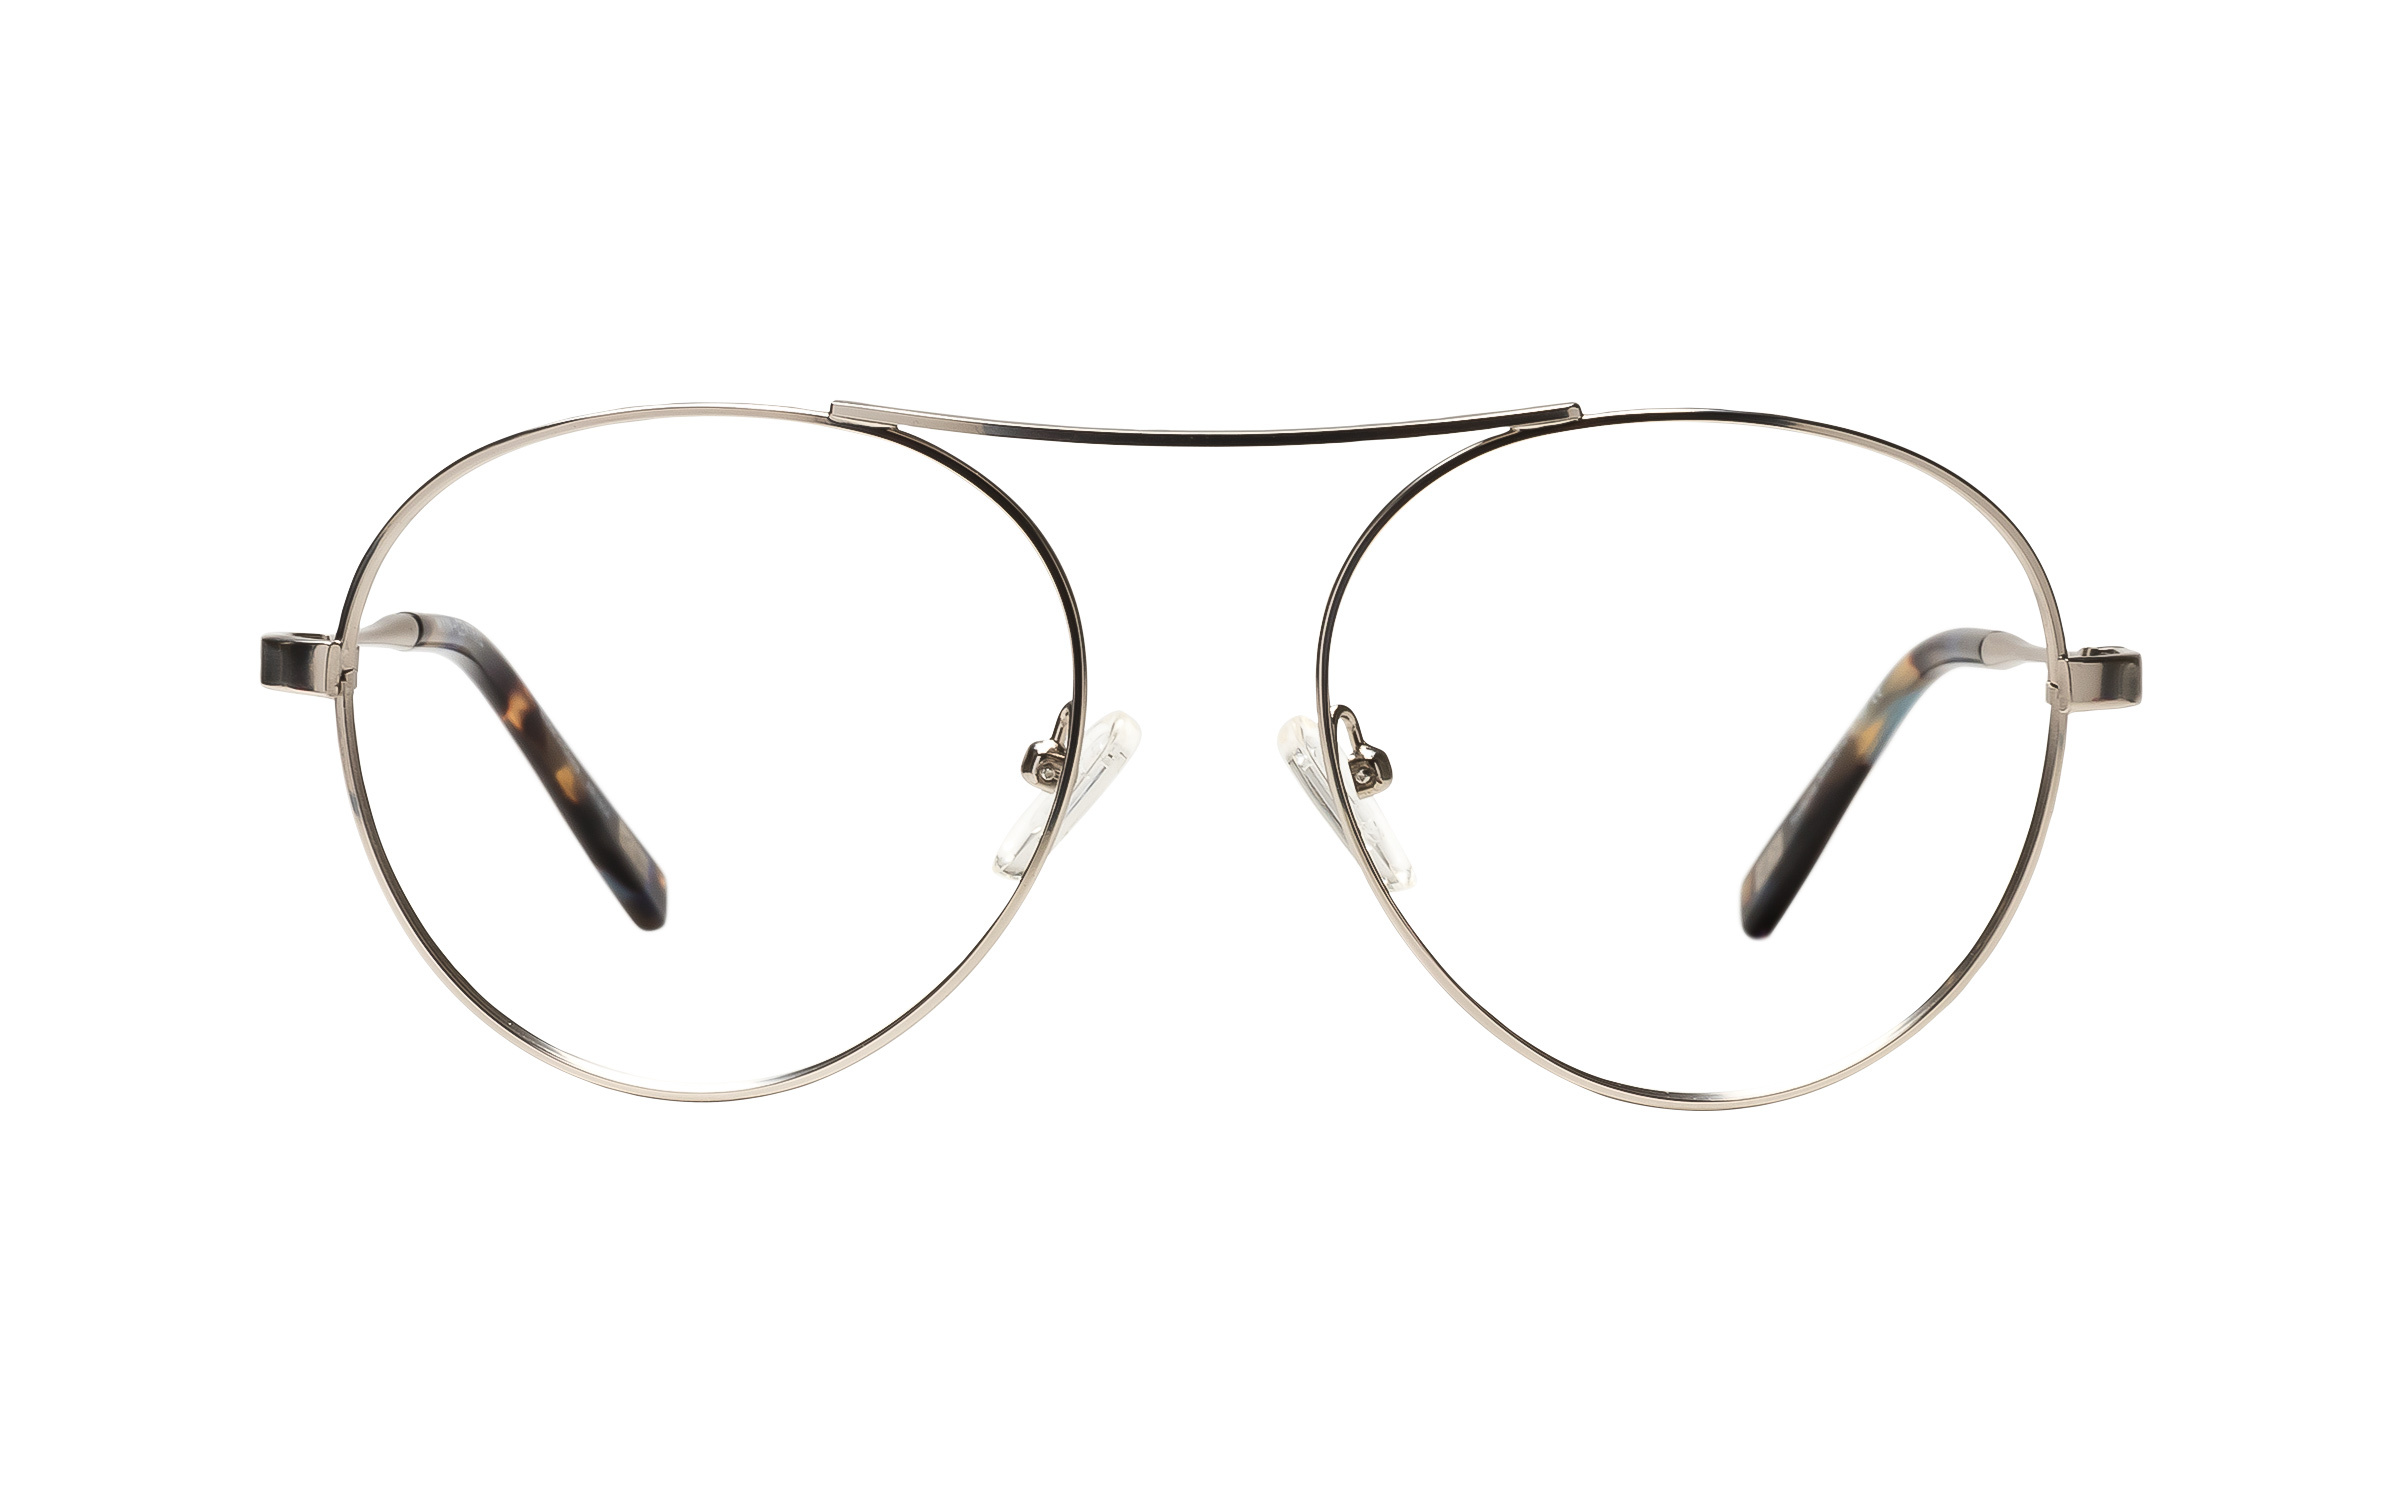 Main and Central Footscray (51) Eyeglasses and Frame in Silver | Plastic/Metal - Online Coastal